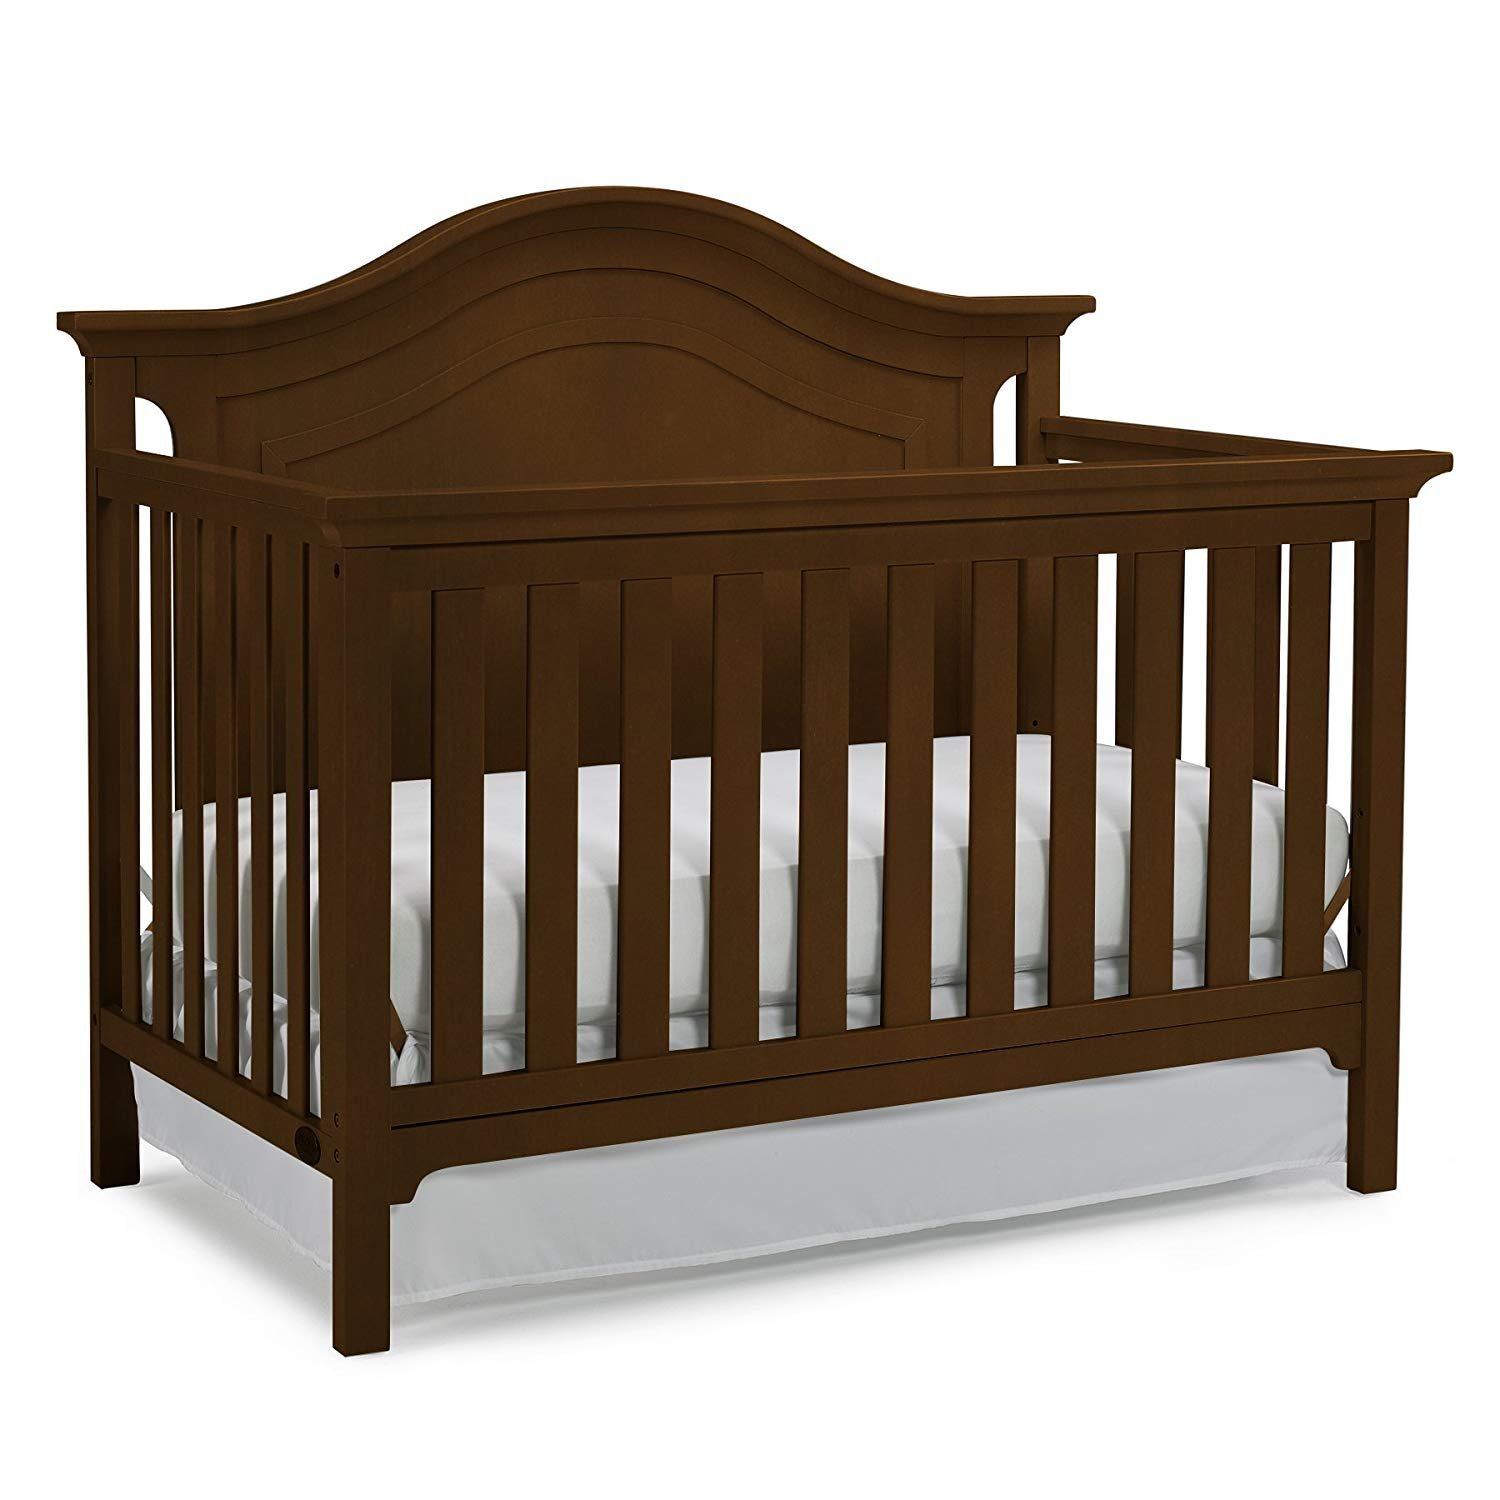 Ti Amo Catania Convertible Crib - Dark Roast (CURBISDE PICK-UP ONLY)